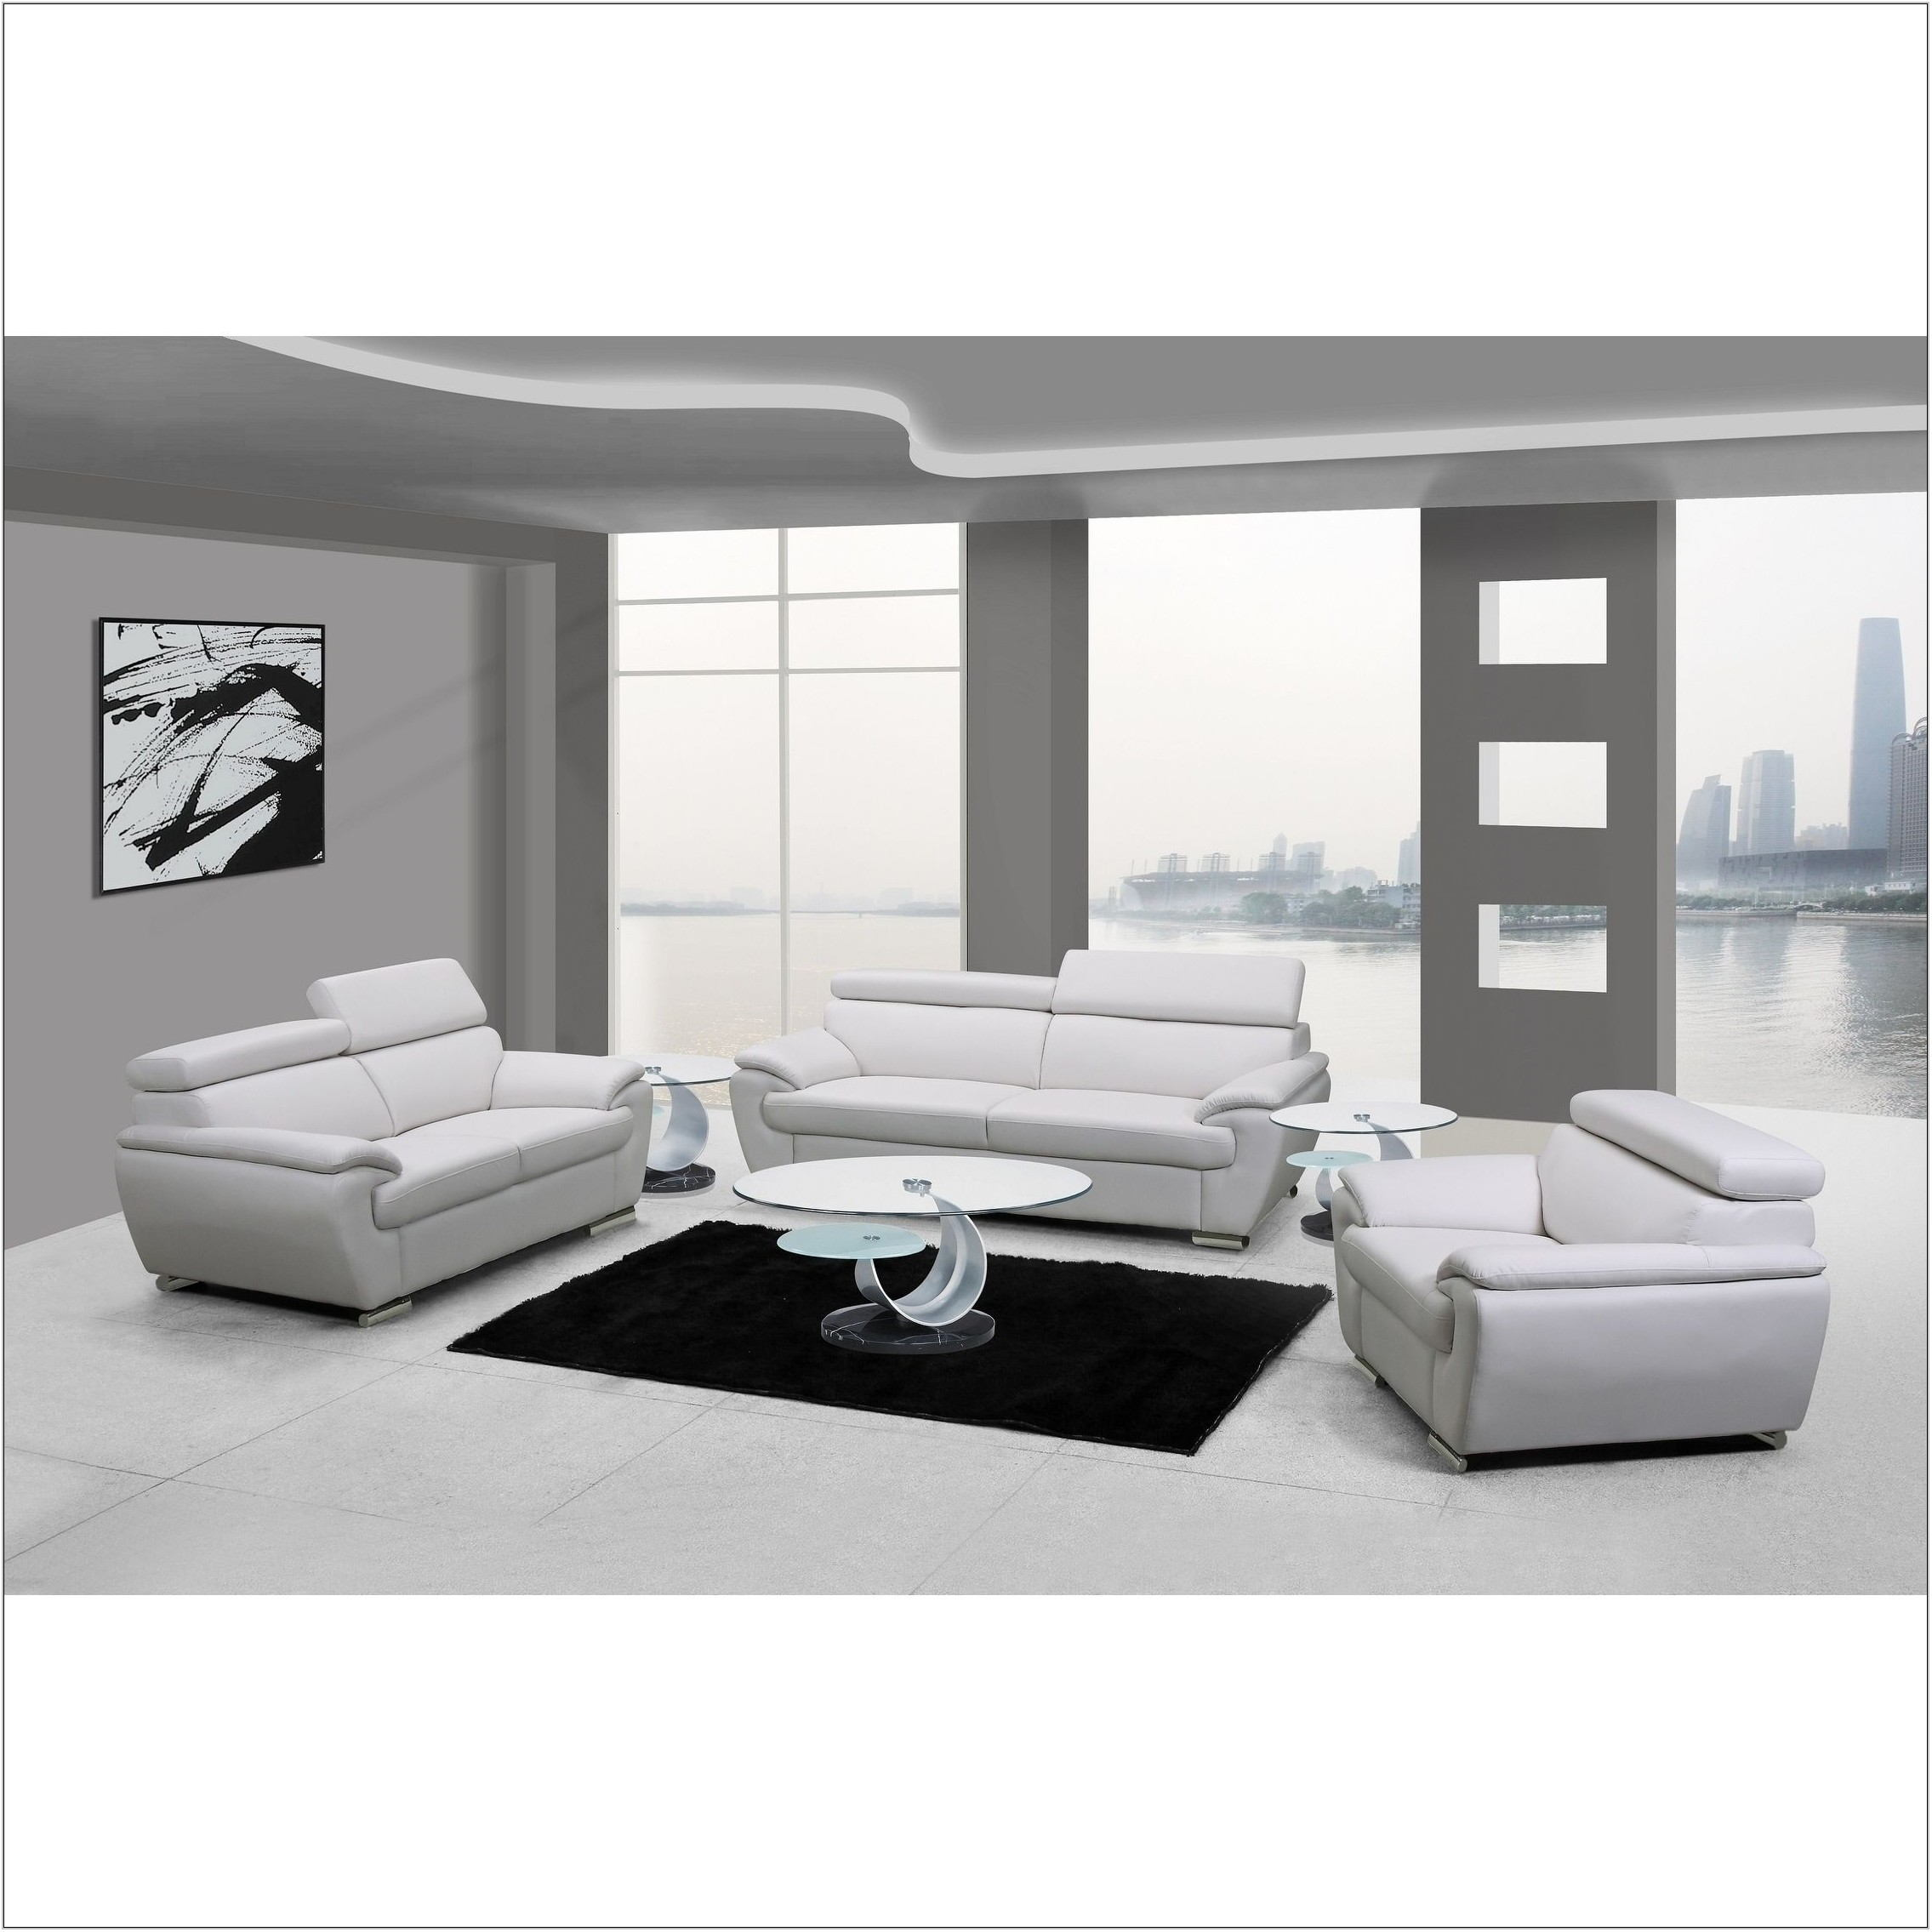 3 Piece White Living Room Set